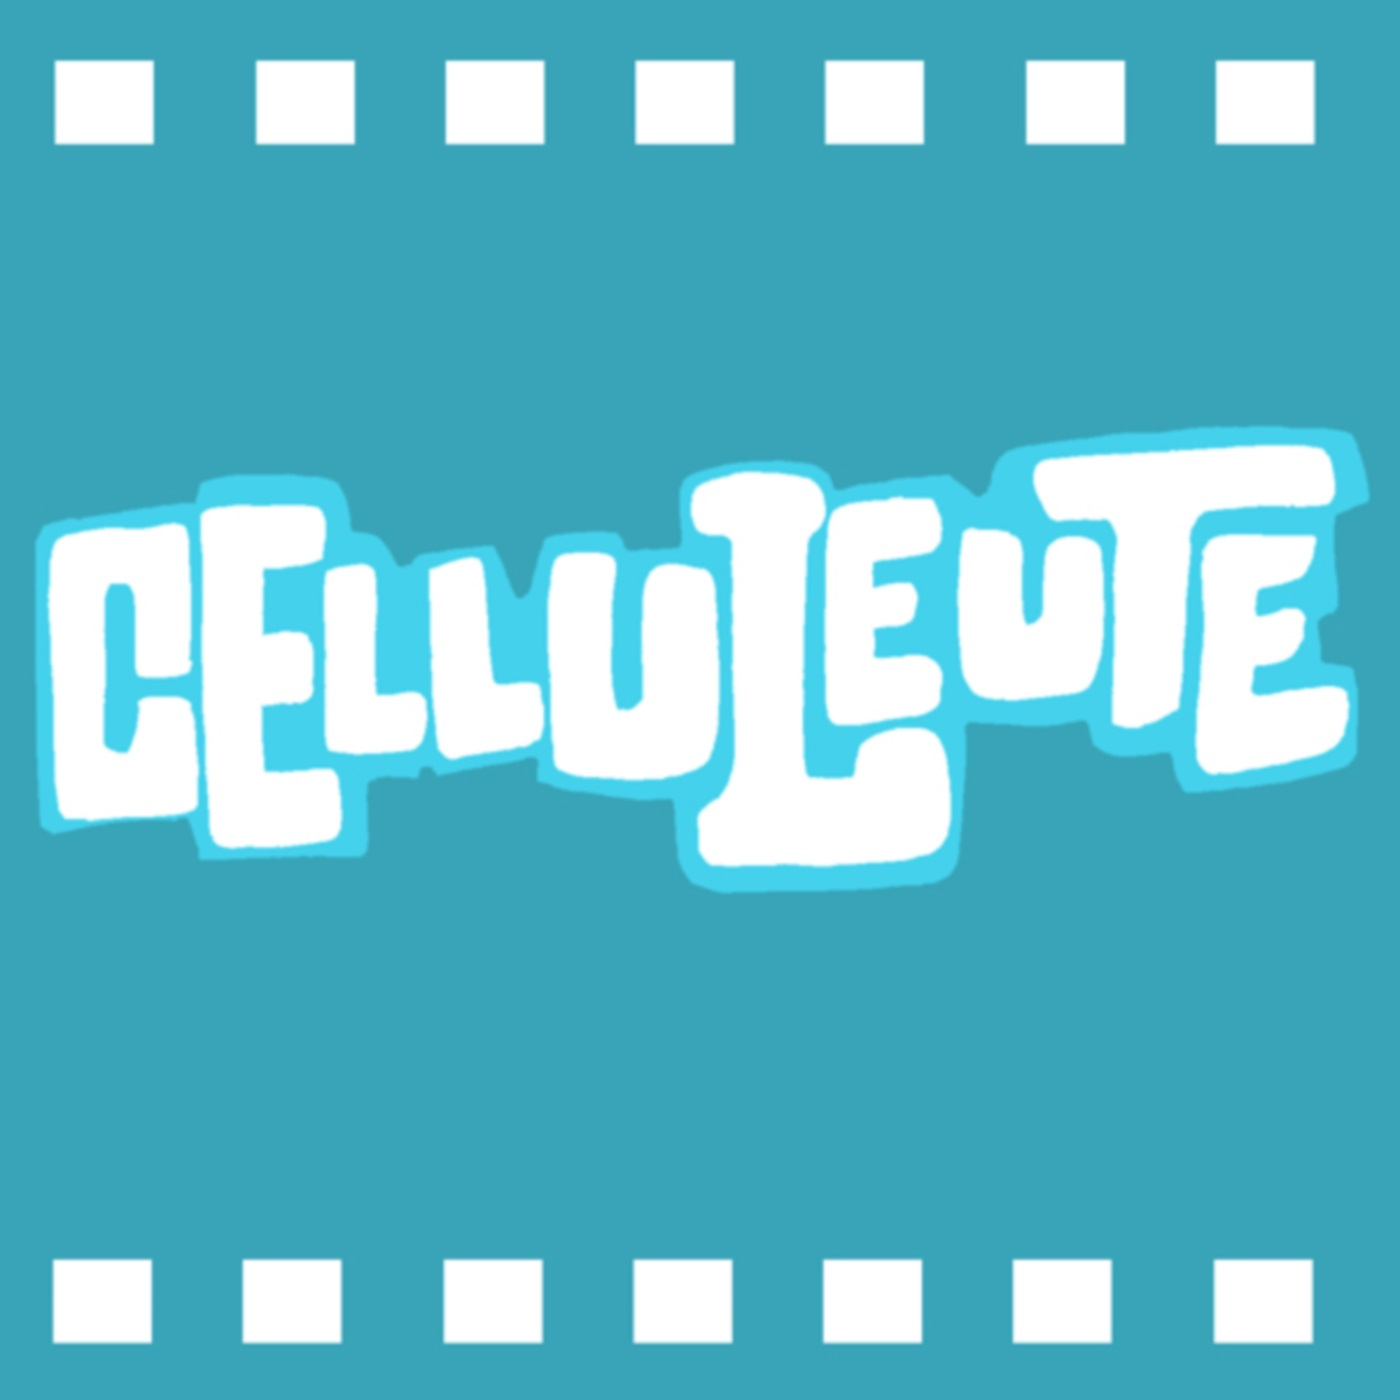 Celluleute Podcast